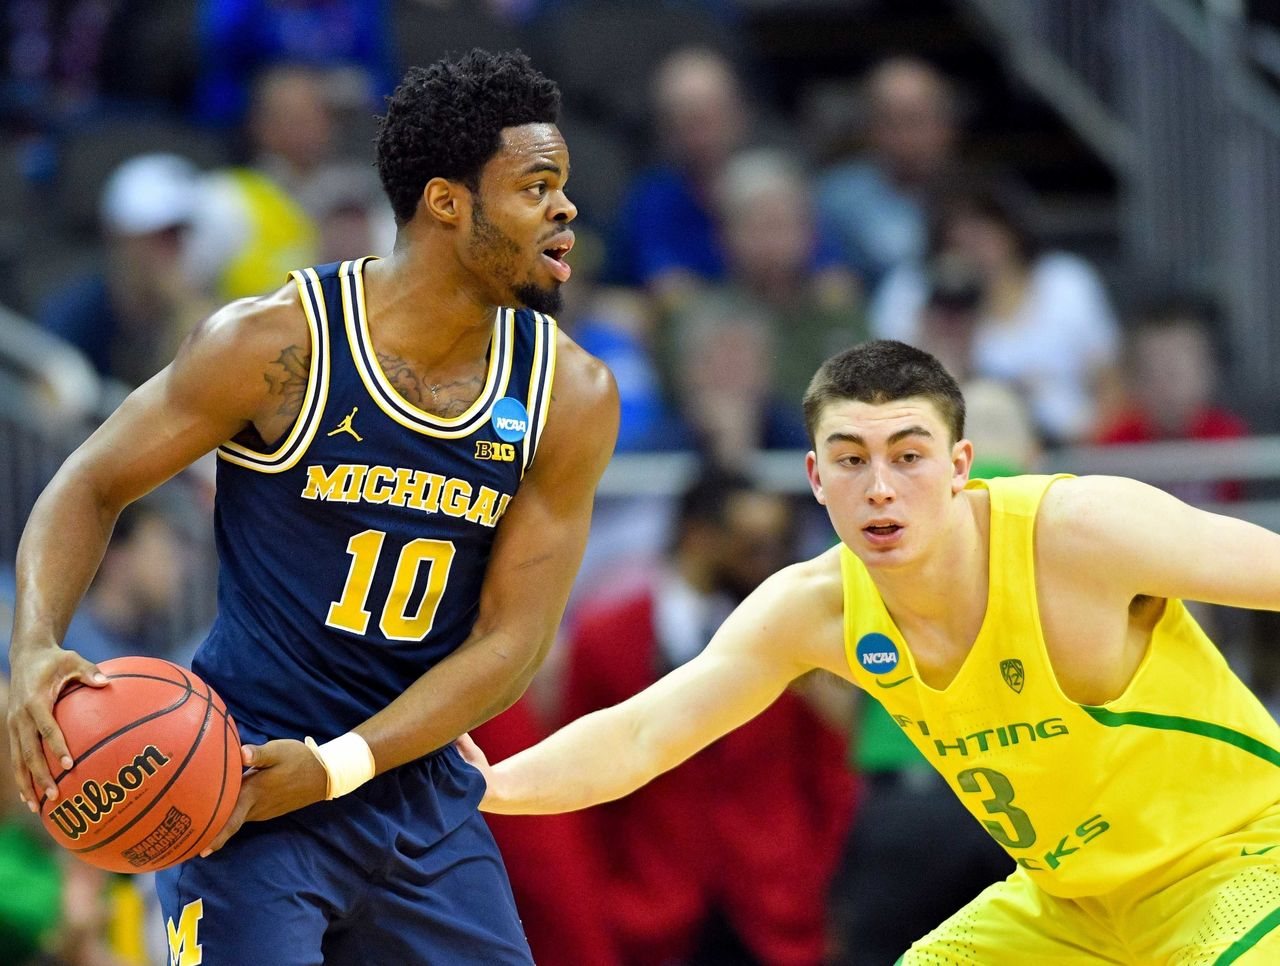 Cropped 2017 03 23t234506z 906920664 nocid rtrmadp 3 ncaa basketball ncaa tournament midwest regional oregon vs michigan